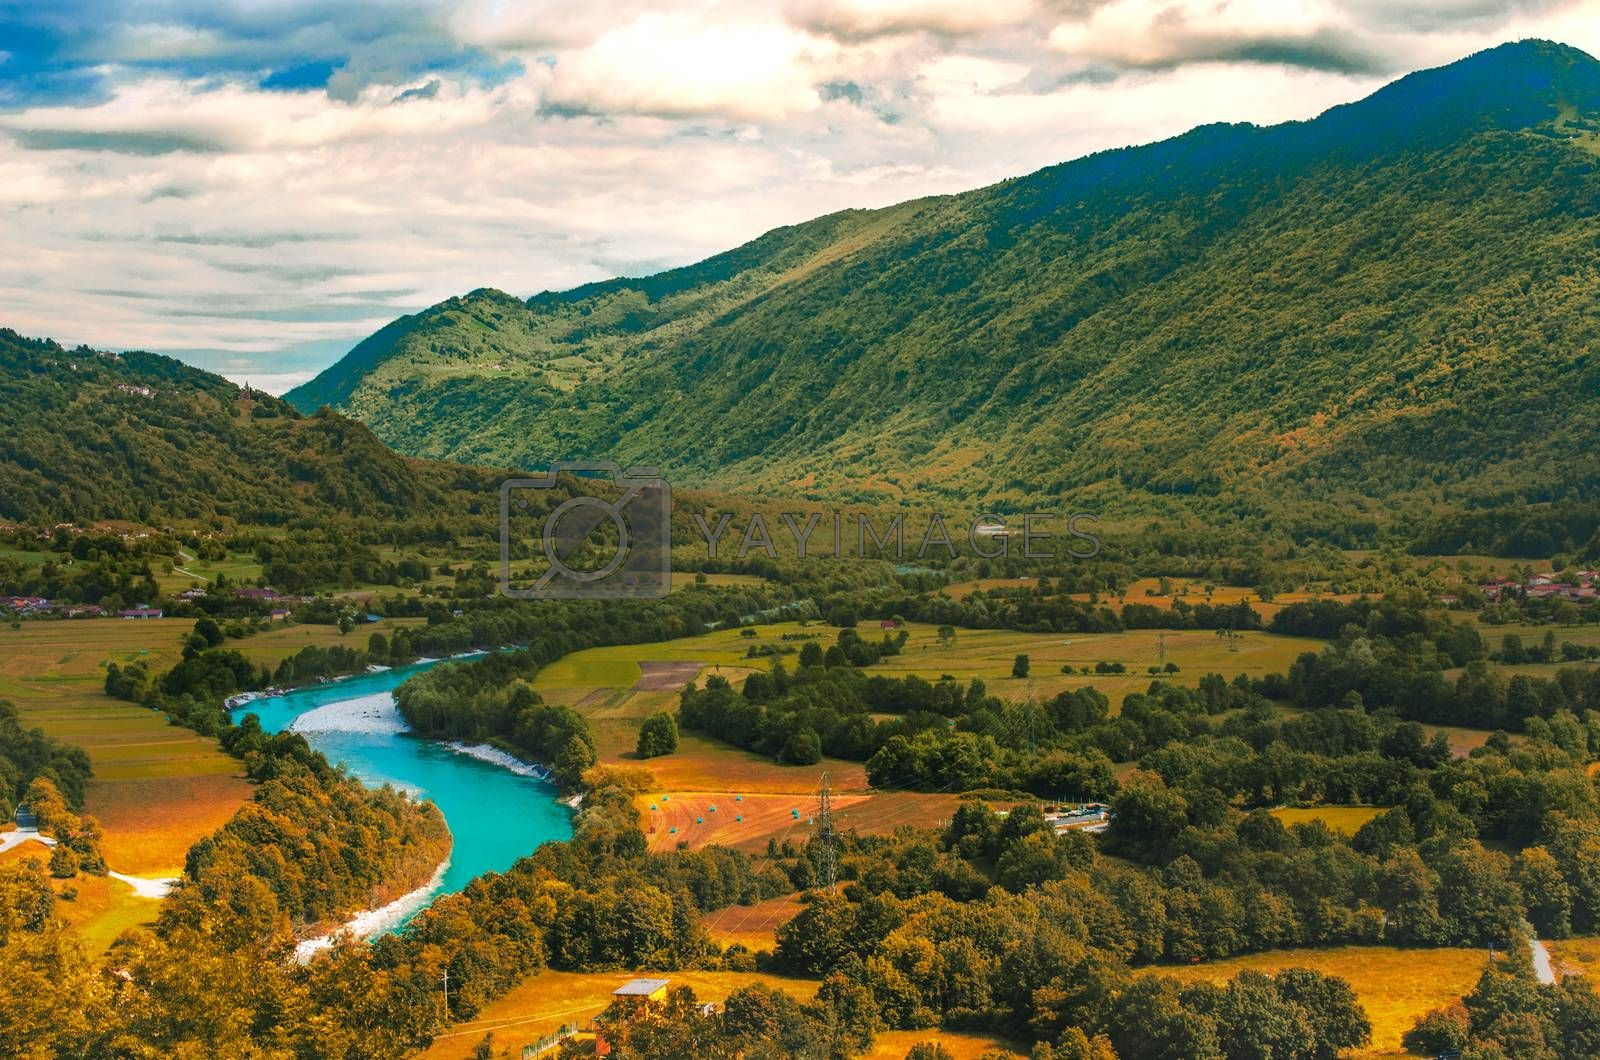 Isonzo Soca river valley  yellow teal and orange sunset landscape in  Slovenia - Italy border .